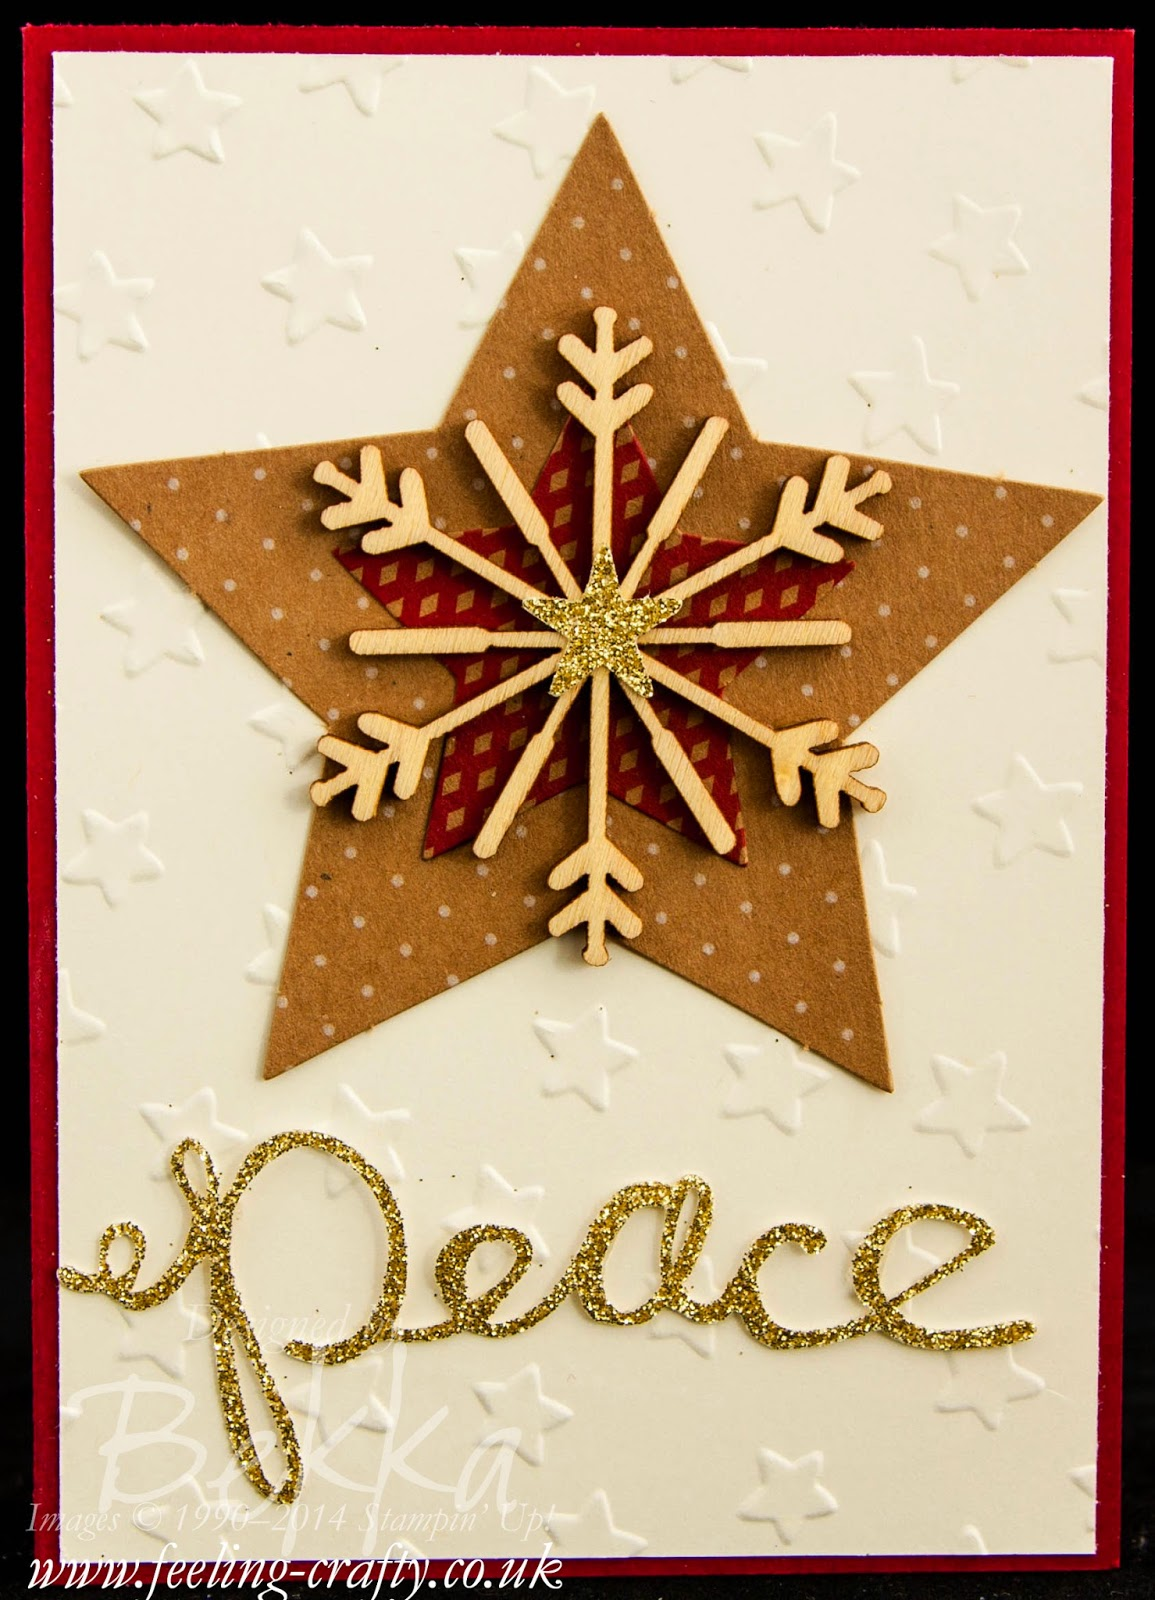 Many Merry Stars Simply Created Kit - A Card